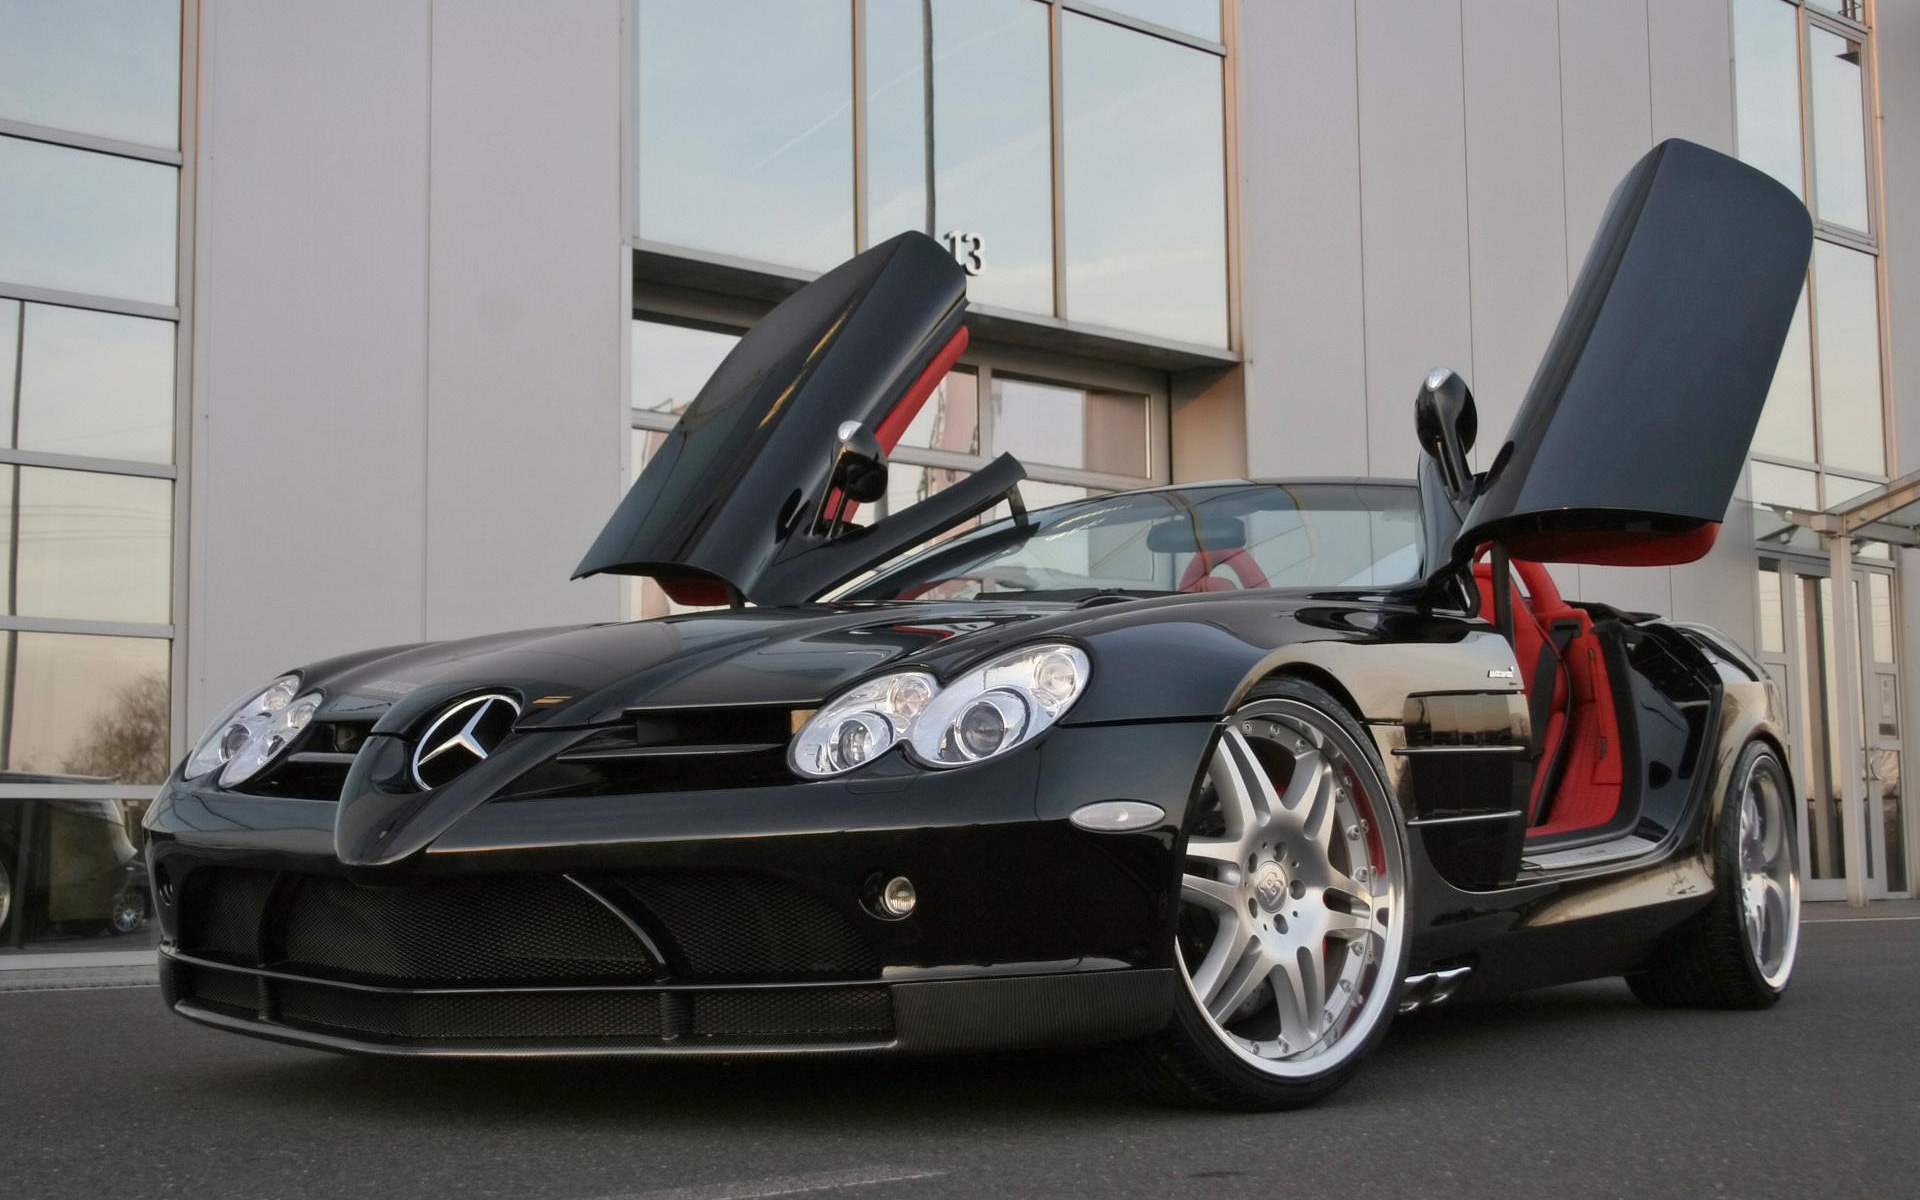 Mercedes-Benz SLR McLaren Car